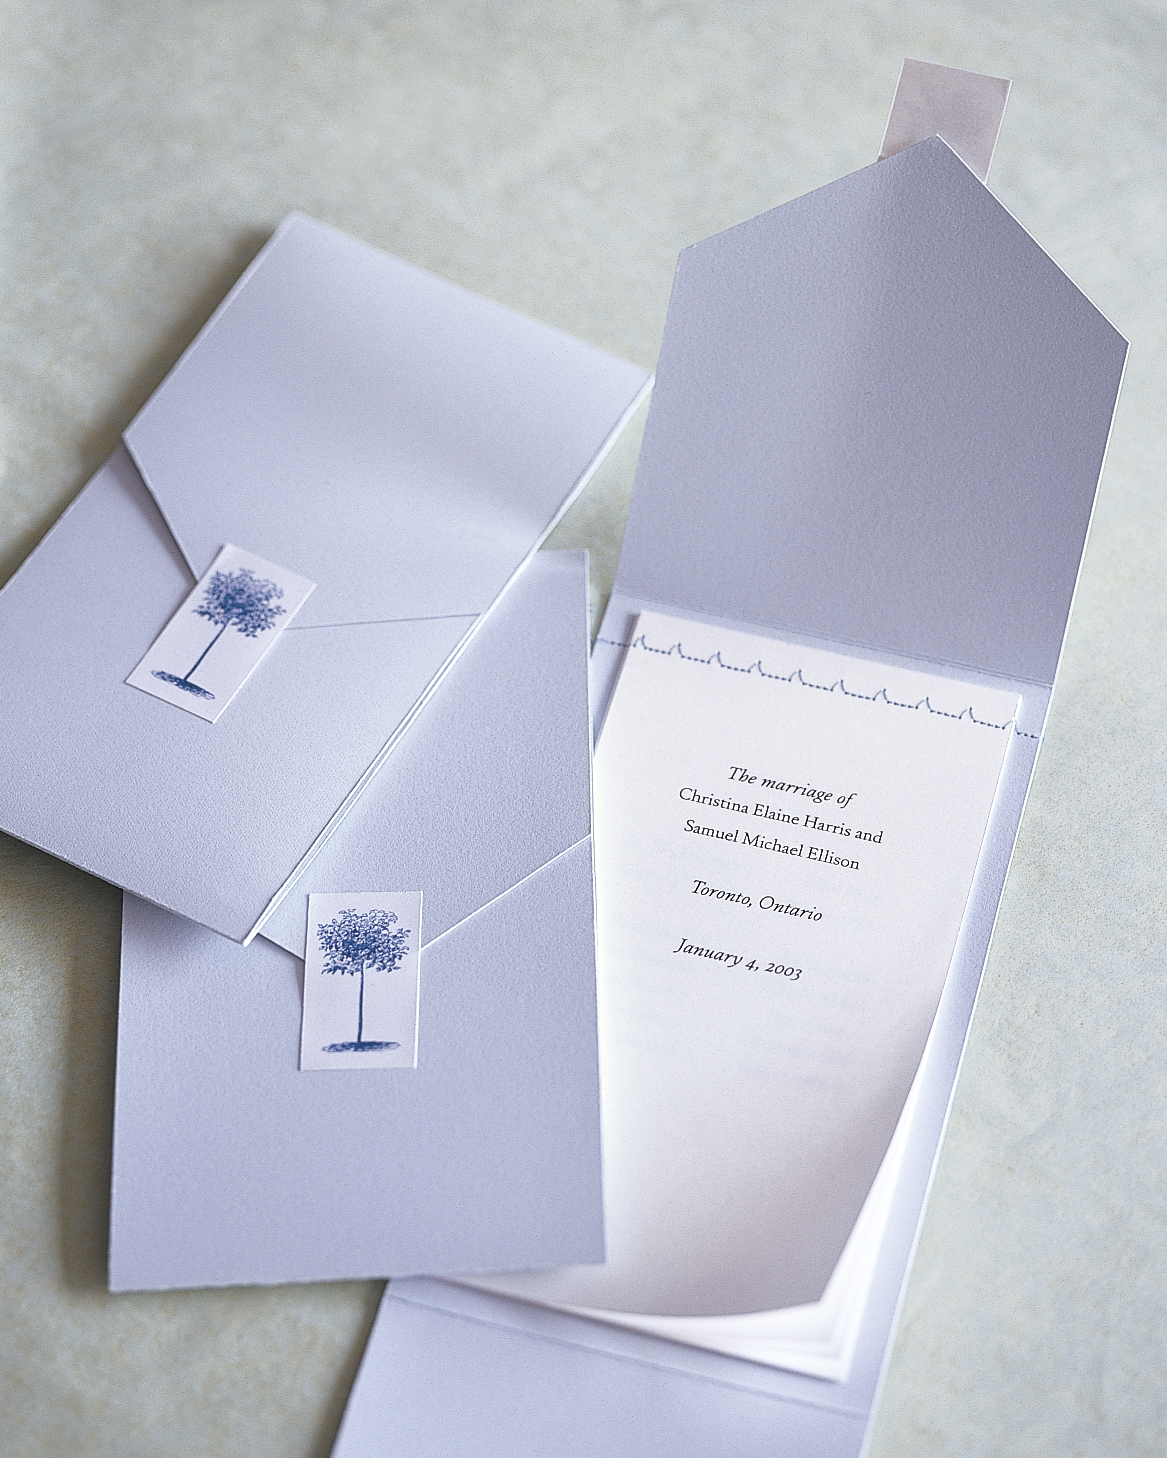 diy-wedding-ceremony-programs-ml083a06-0515.jpg